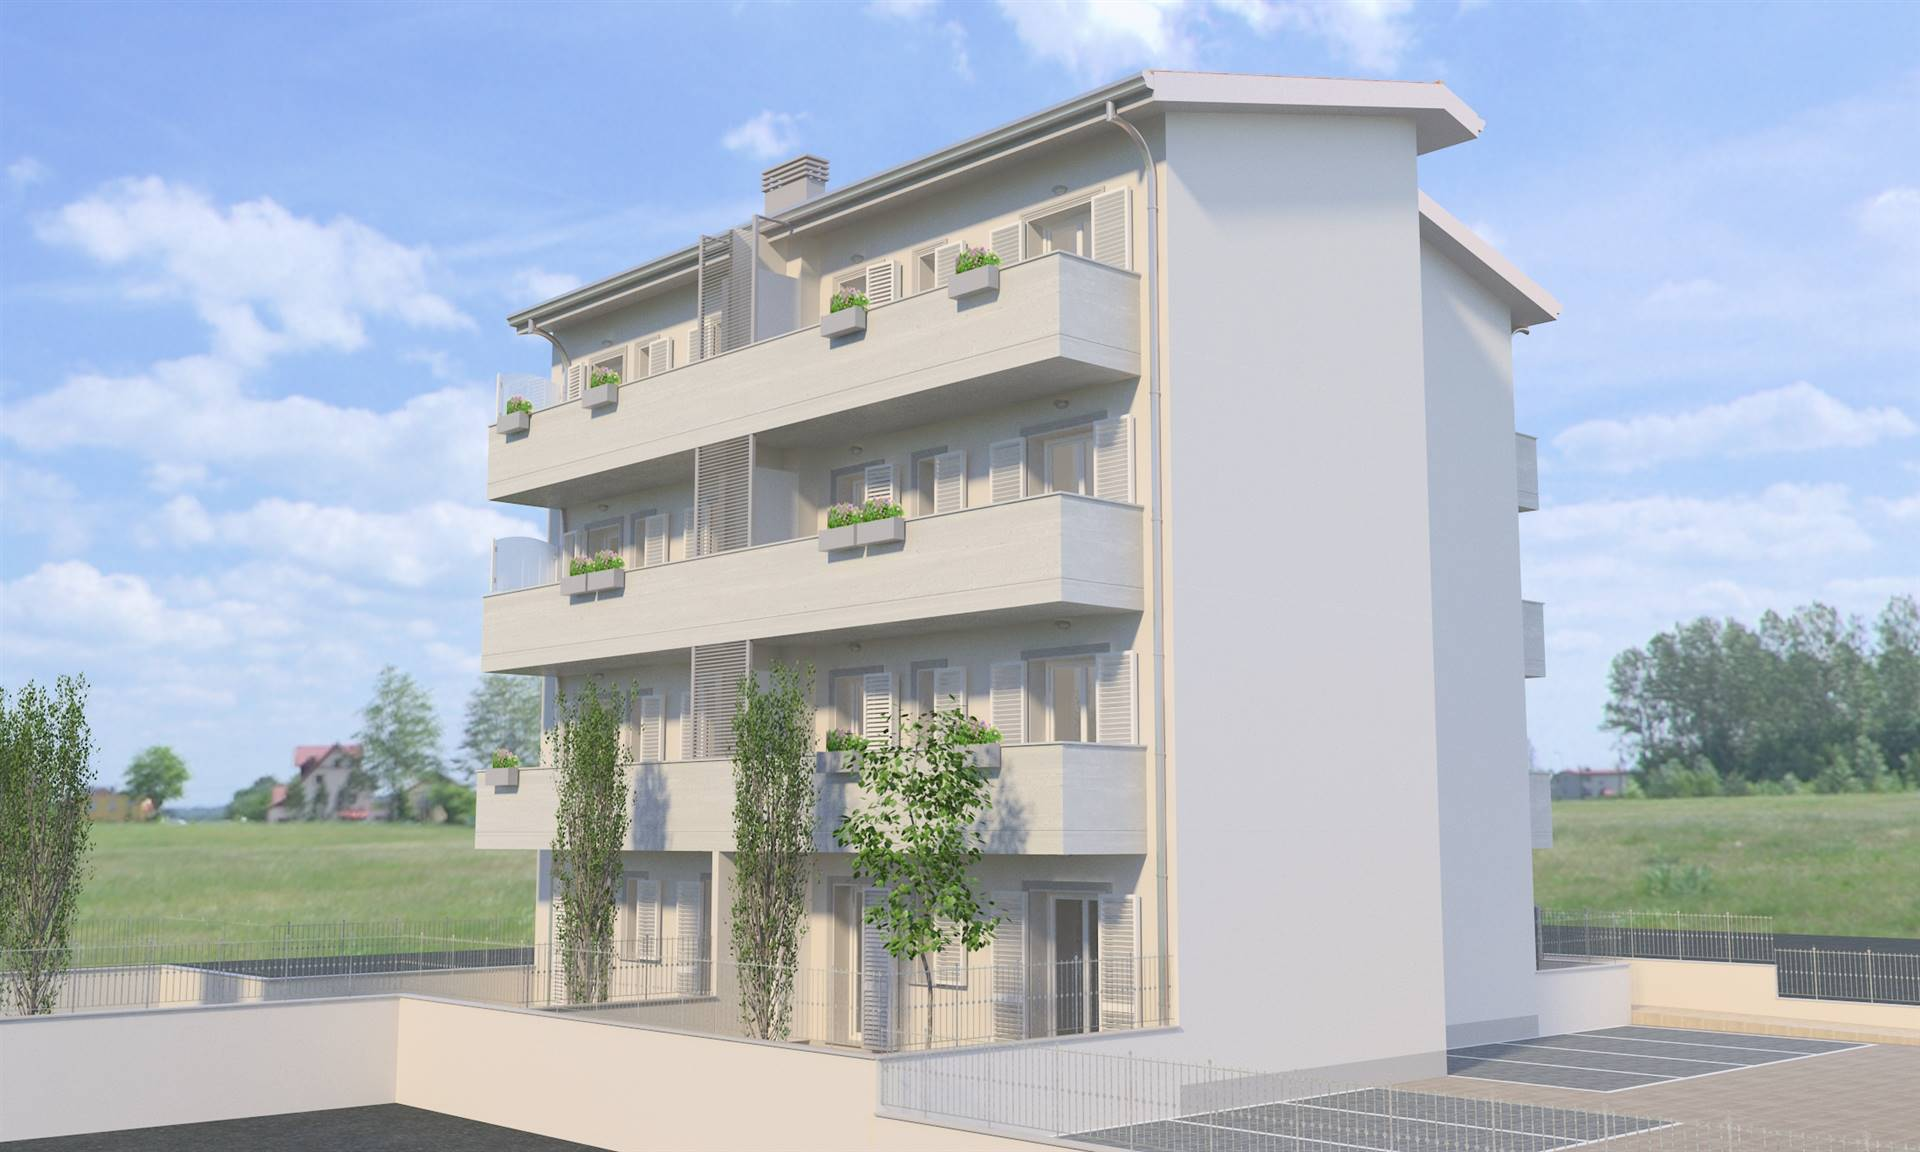 LA VILLA, CAMPI BISENZIO, Apartment for sale, New construction, Heating Individual heating system, Energetic class: A+, placed at 3° on 3, composed